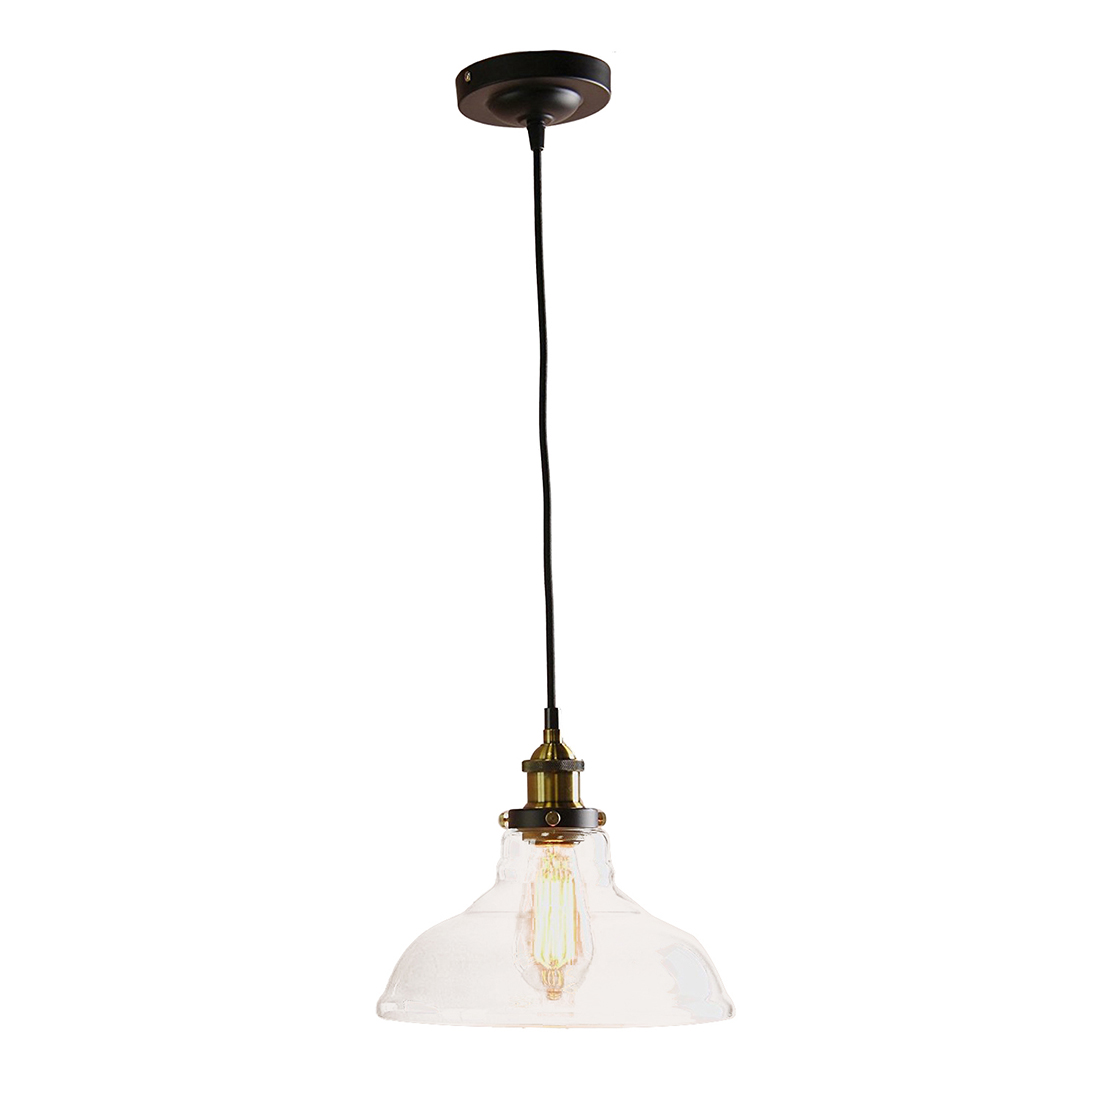 Modern Vintage Industrial 1 Light Iron Body Glass Shade Loft Bar Kitchen cover Chandeliers Hang Pendant Lamp Light Transparent vintage industrial metal finish glass shade loft pendant lamp retro light vintage light fit kitchen black gray